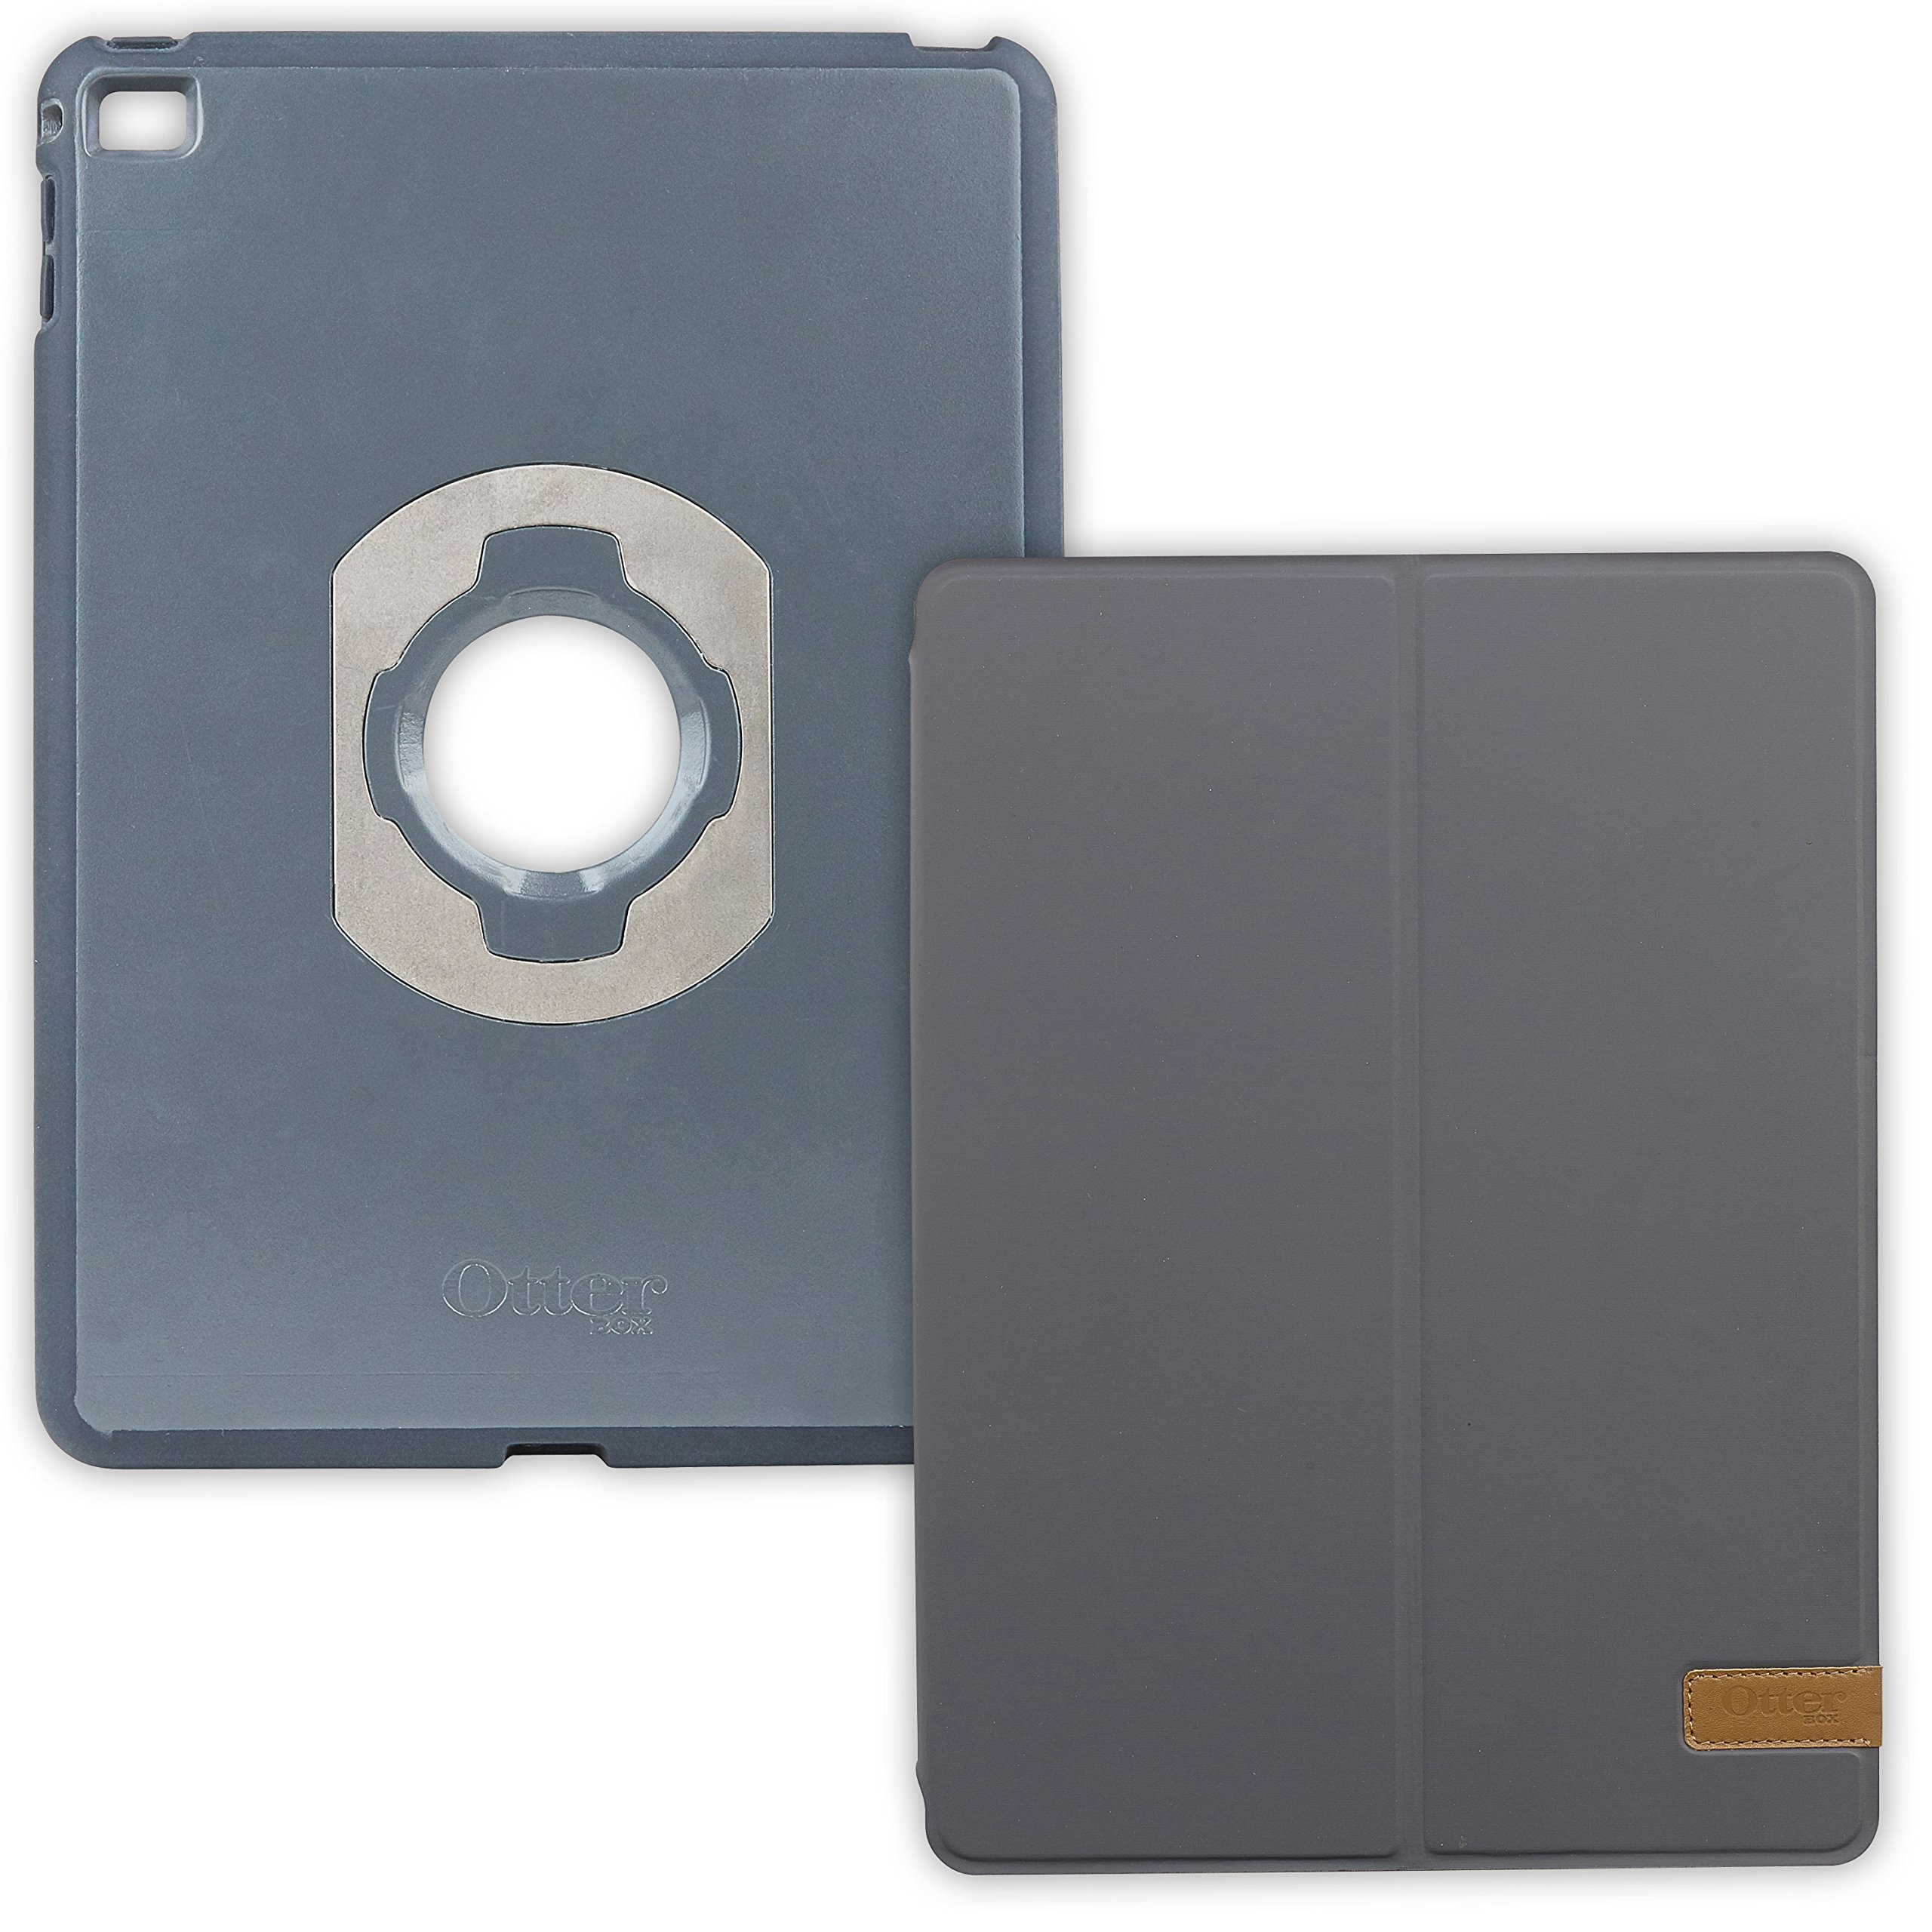 OtterBox Agility Folio Bundle for Apple iPad Air with Shell and Folio Cover, Grey (78-50351)